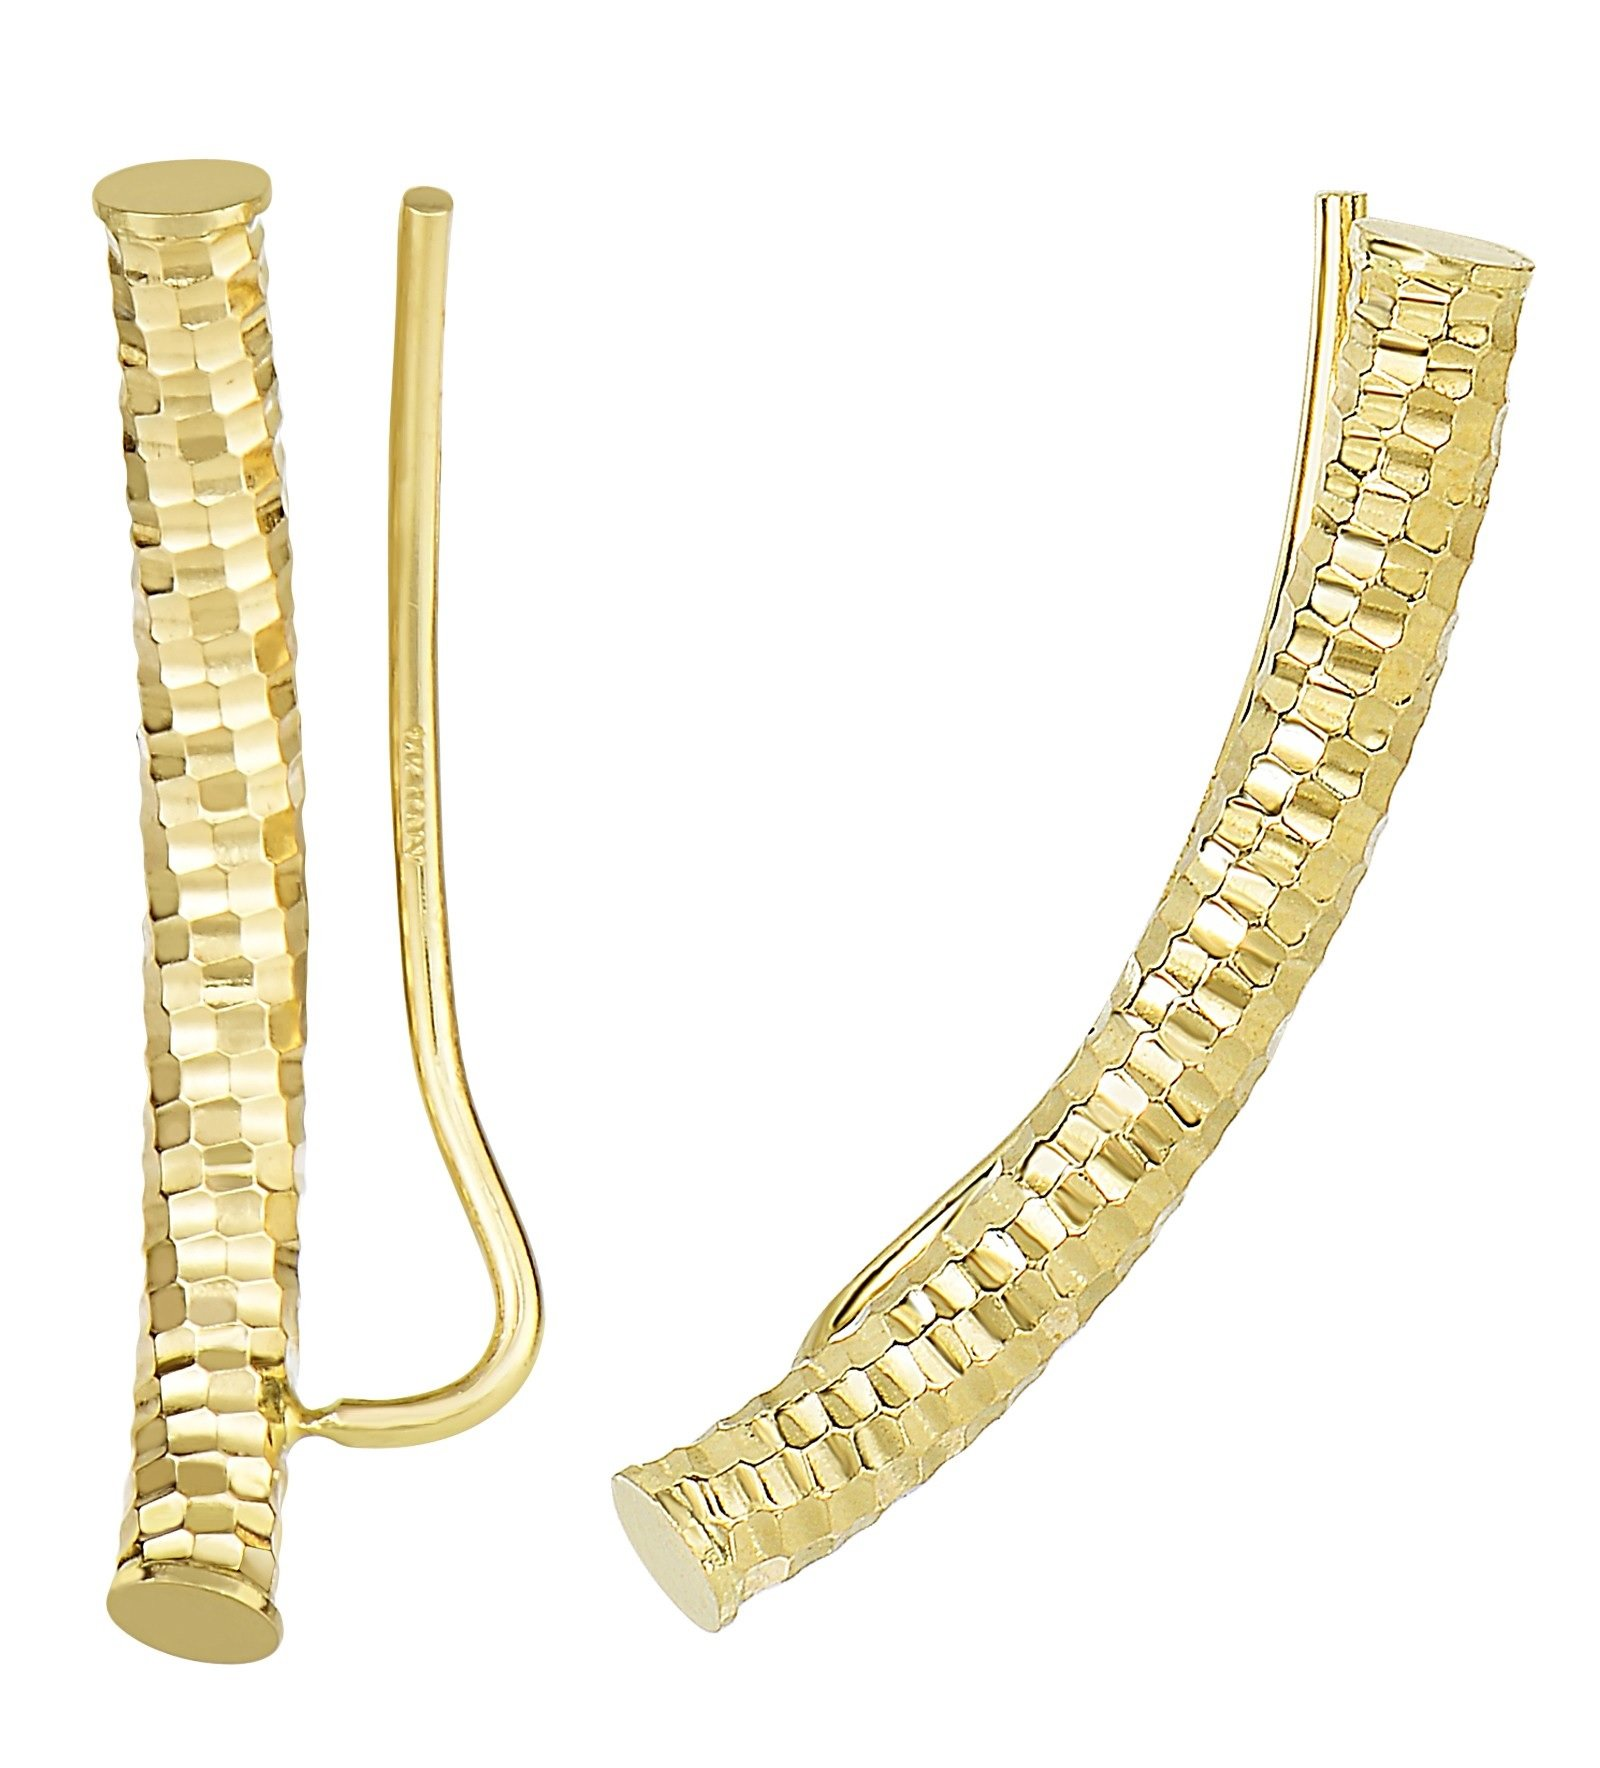 14k Real Yellow Gold Ear Climber Diamond-Cut Curved Bar Earrings 21mm by Ritastephens